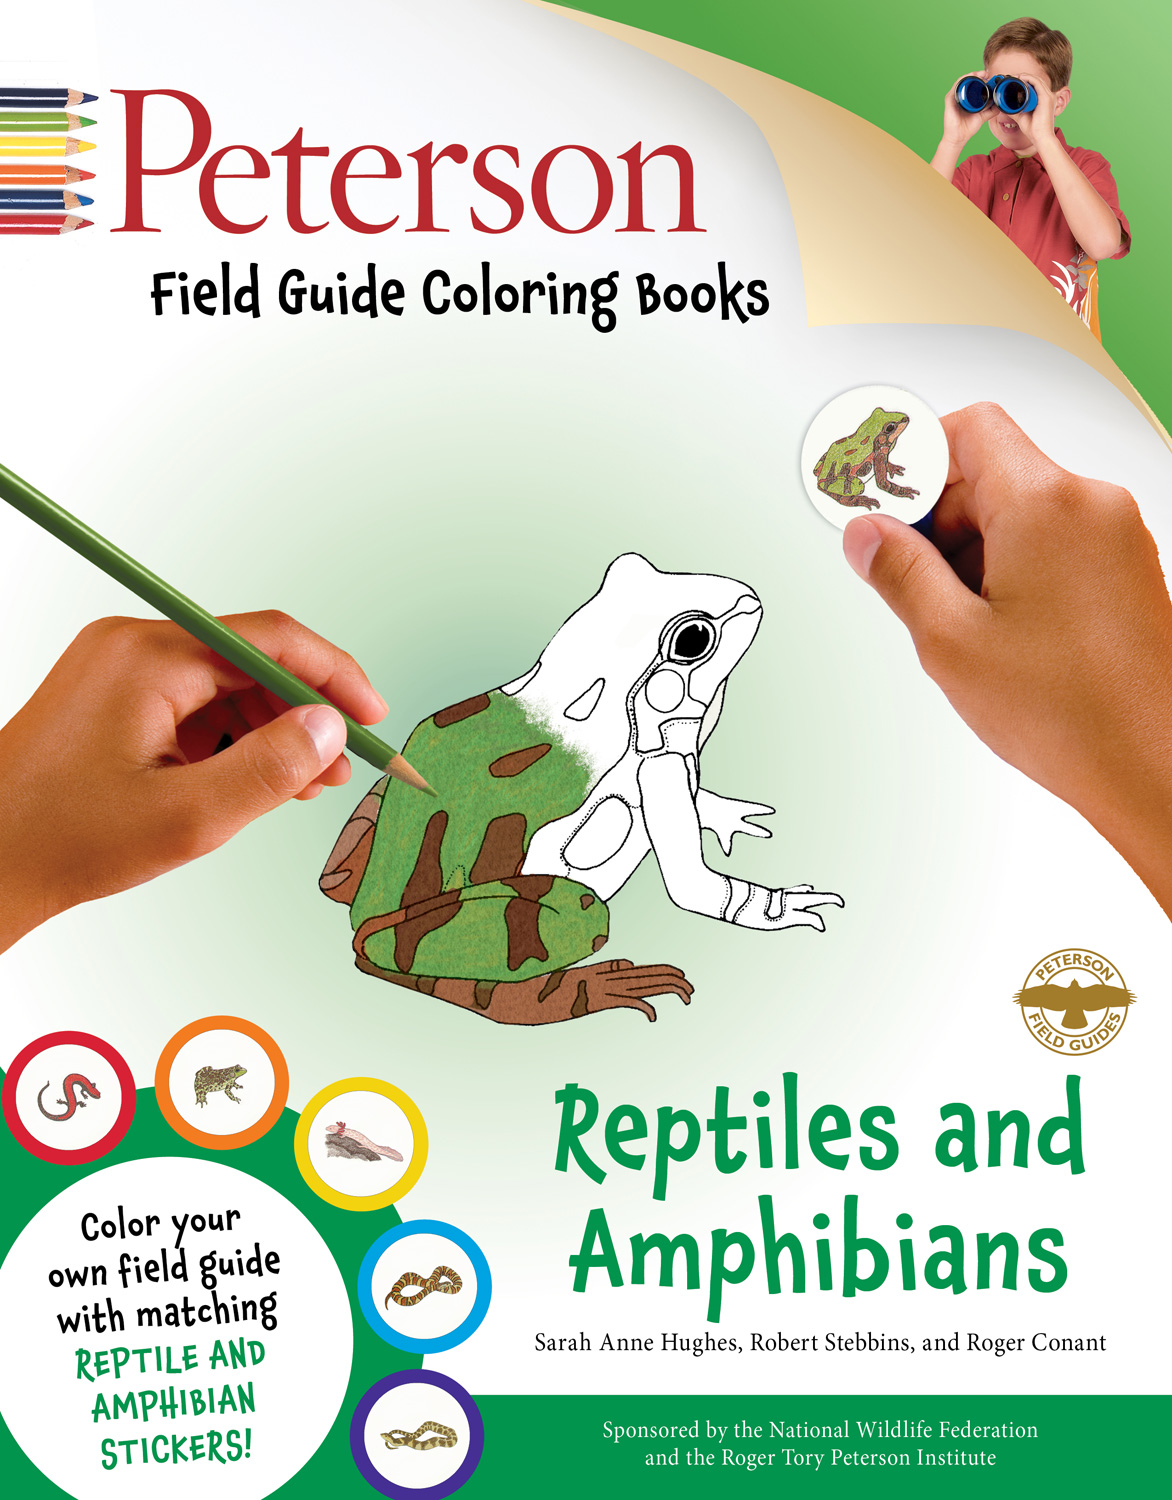 Peterson Field Guide Coloring Books: Reptiles and Amphibians-9780544026957